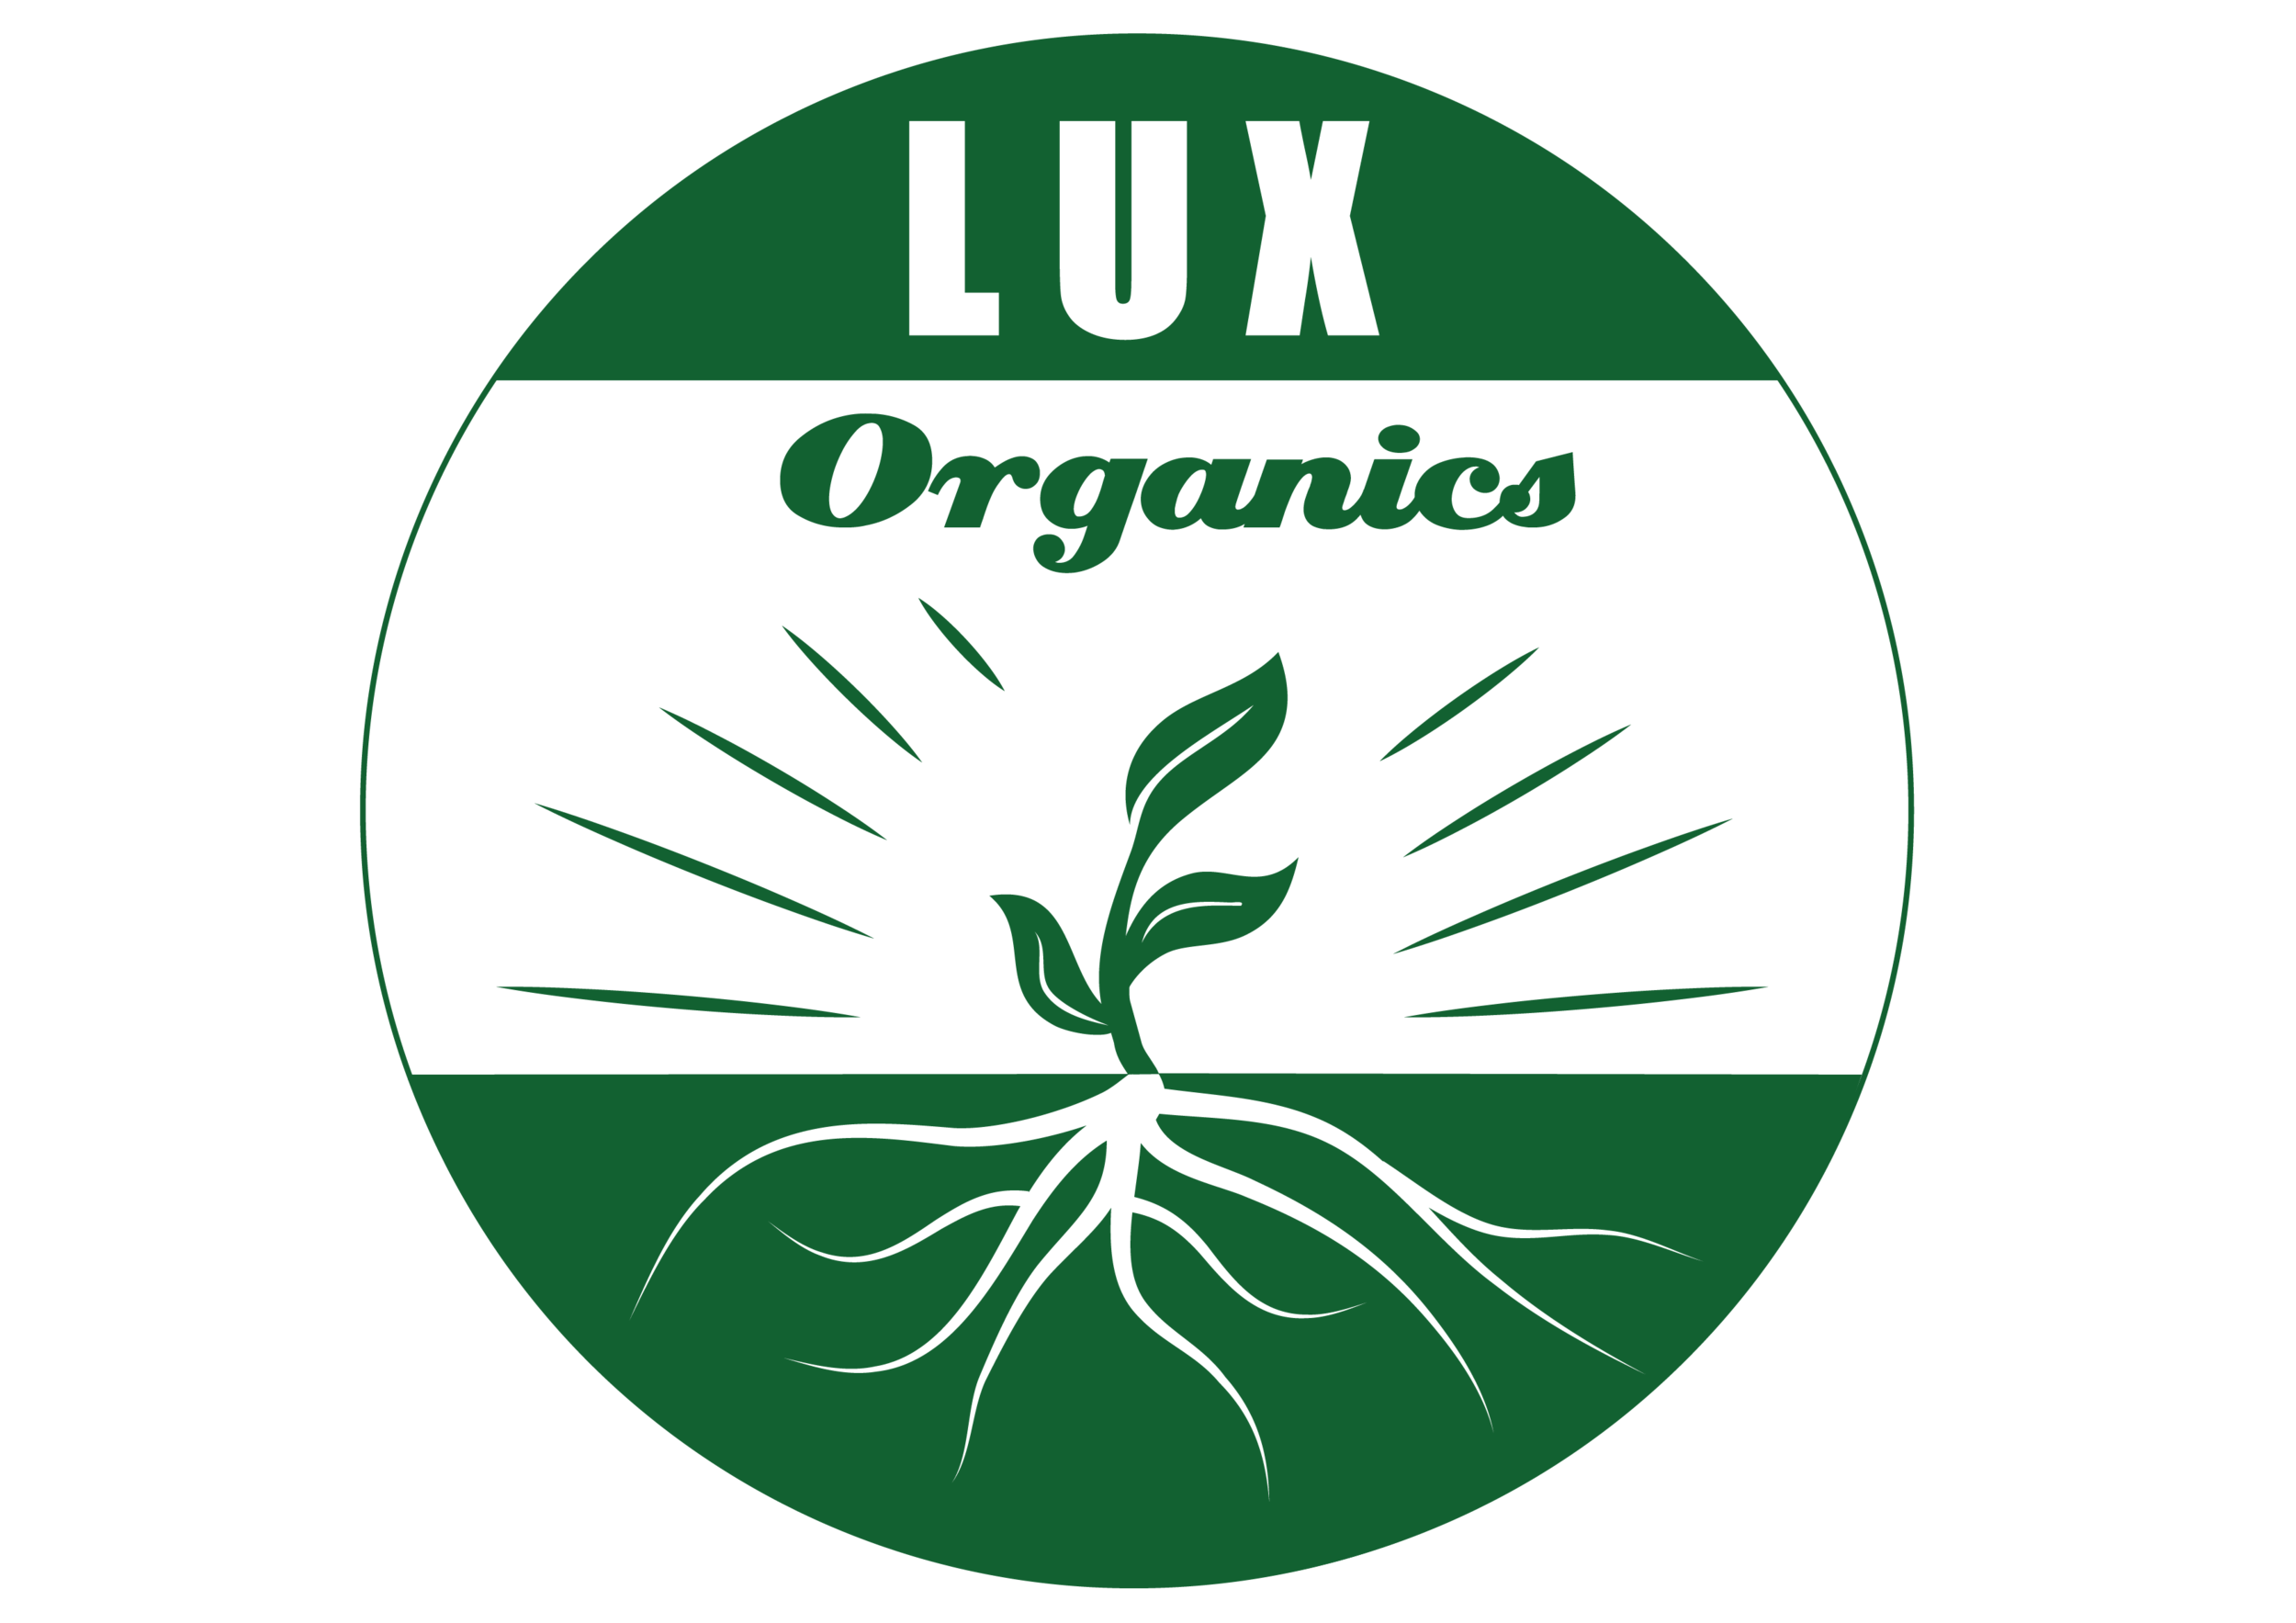 lux logo vector-01.png